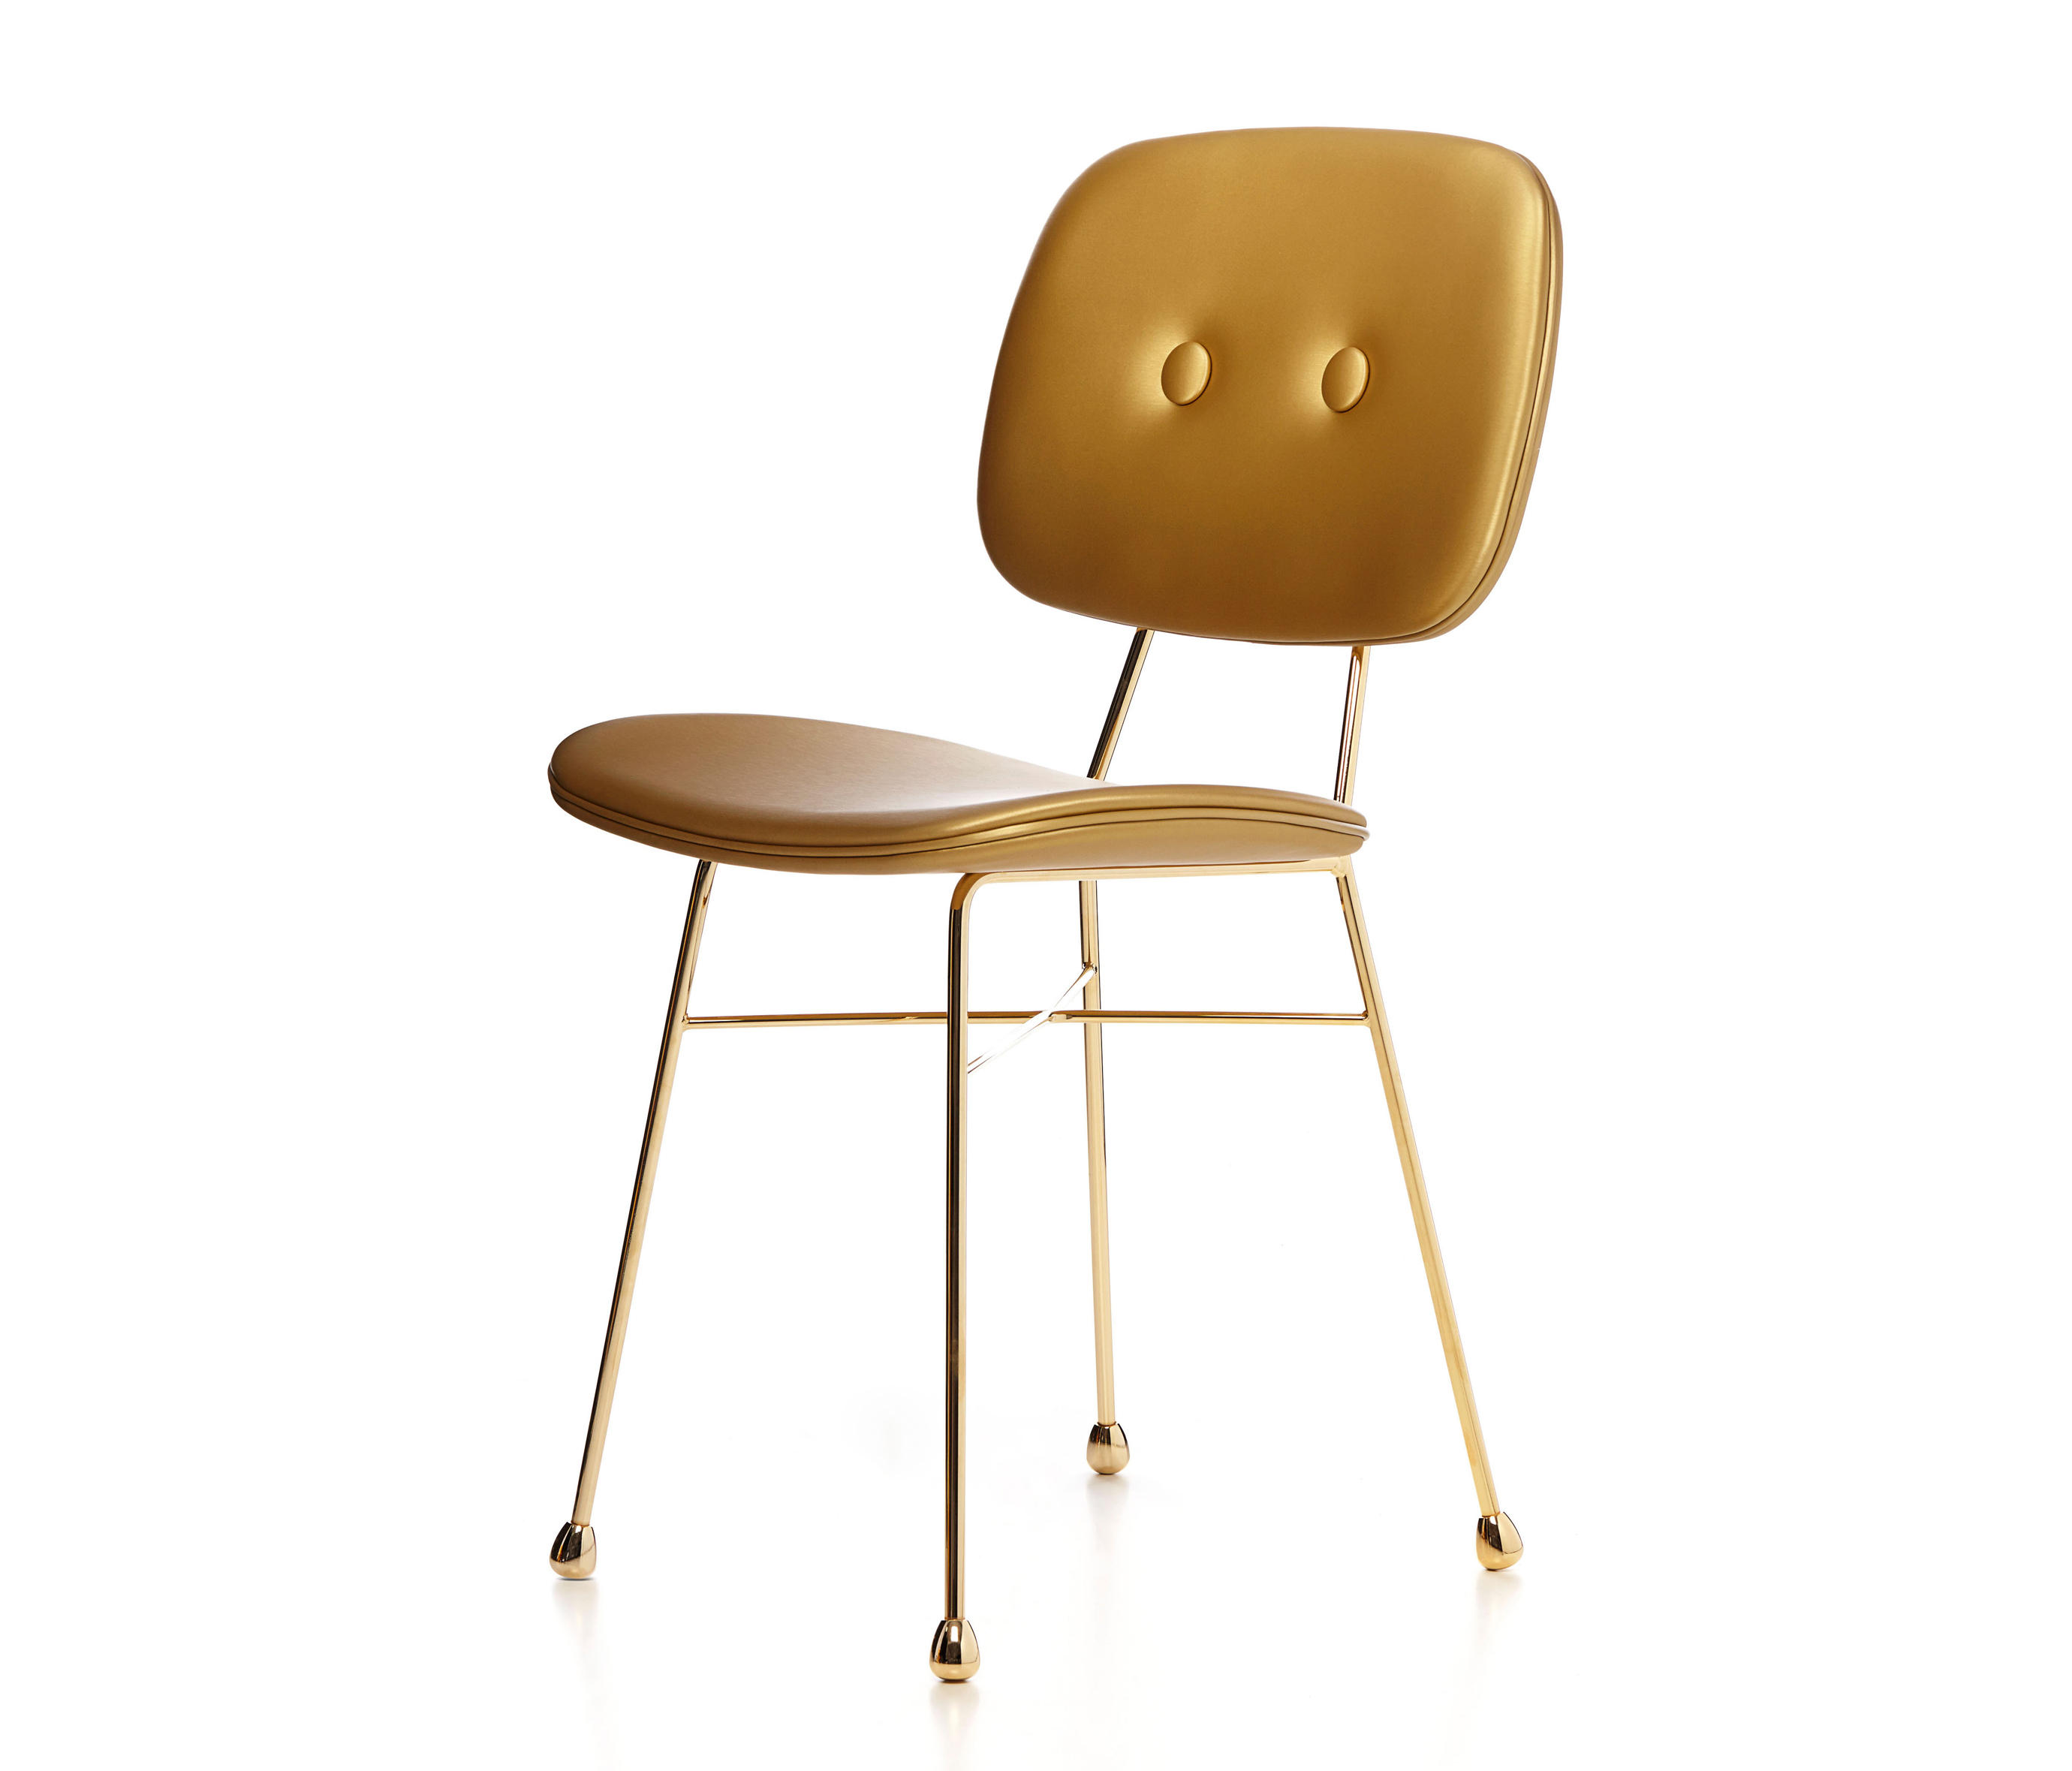 ... The Golden Chair By Moooi | Chairs ...